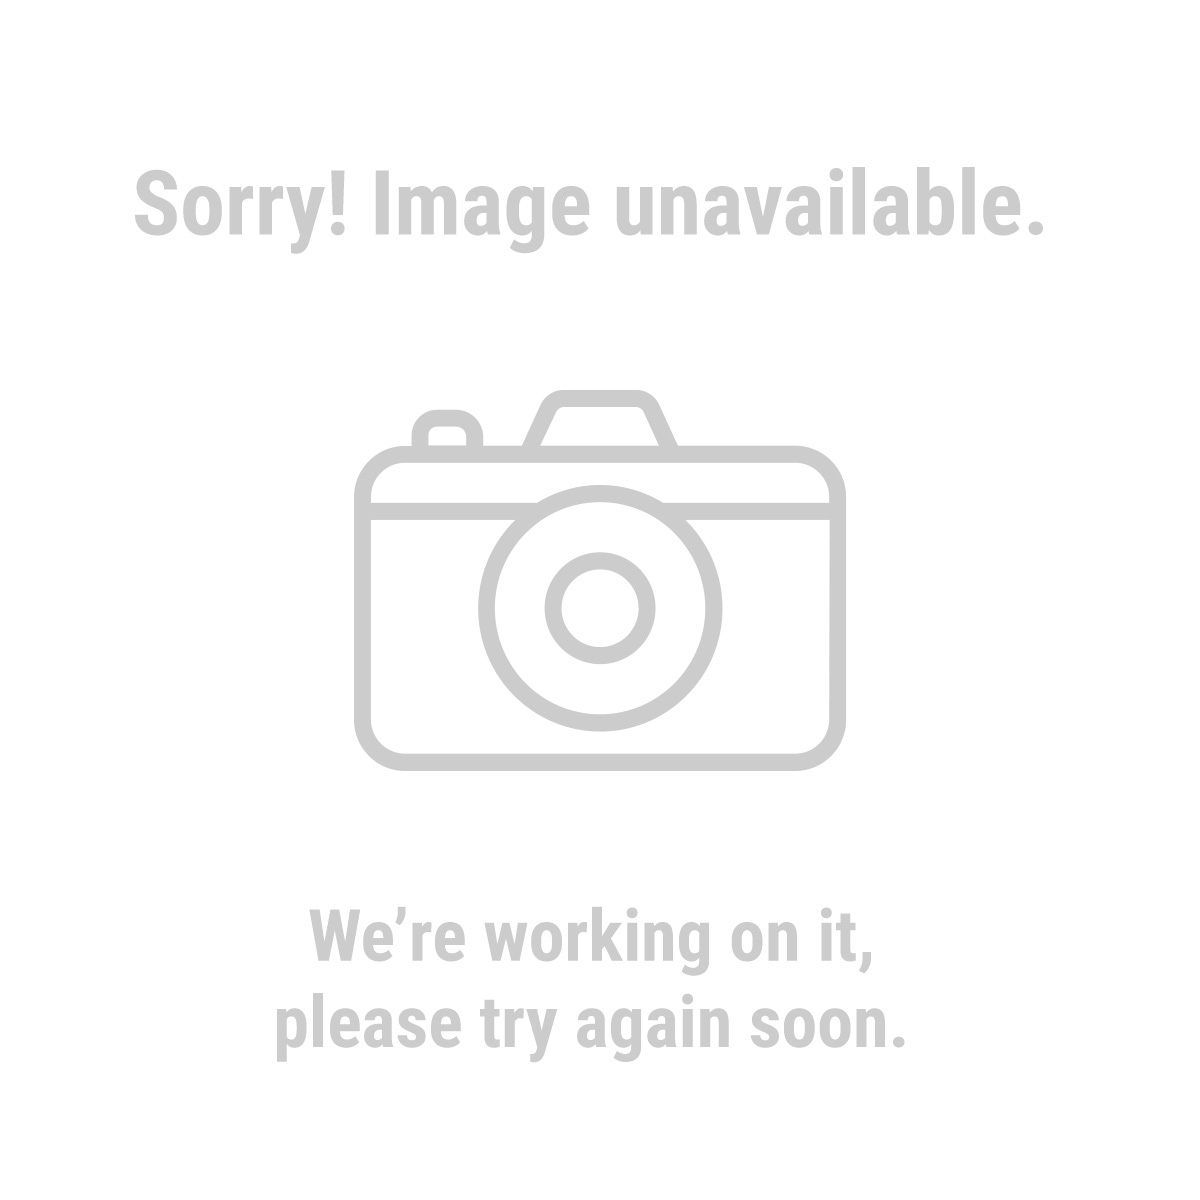 Chicago Electric Welding 91214 Auto Darkening Welding Helmet with Blue Flame Design